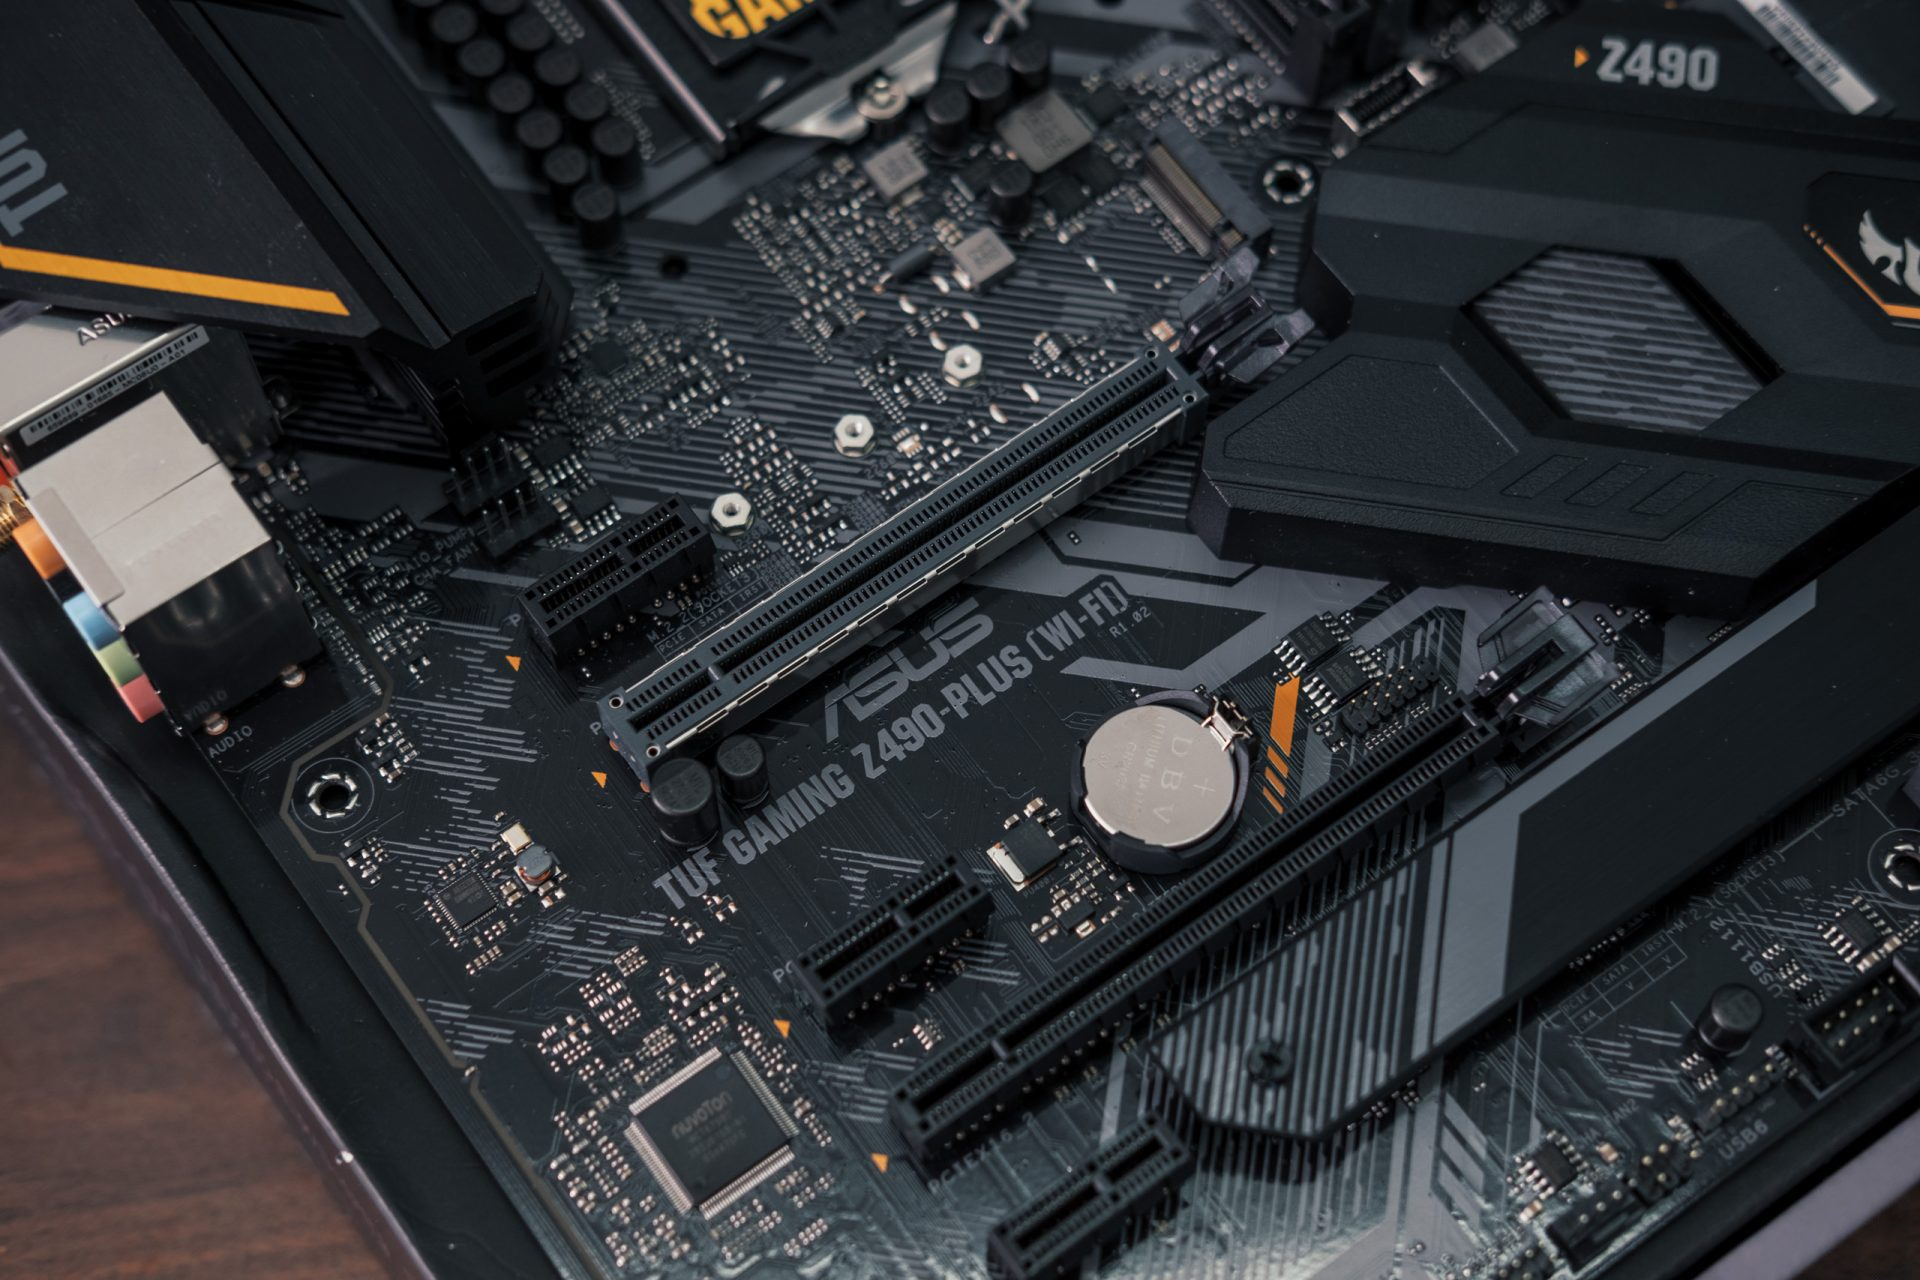 tuf-gaming-z490-plus-9456-1920x1280-jpg.10422